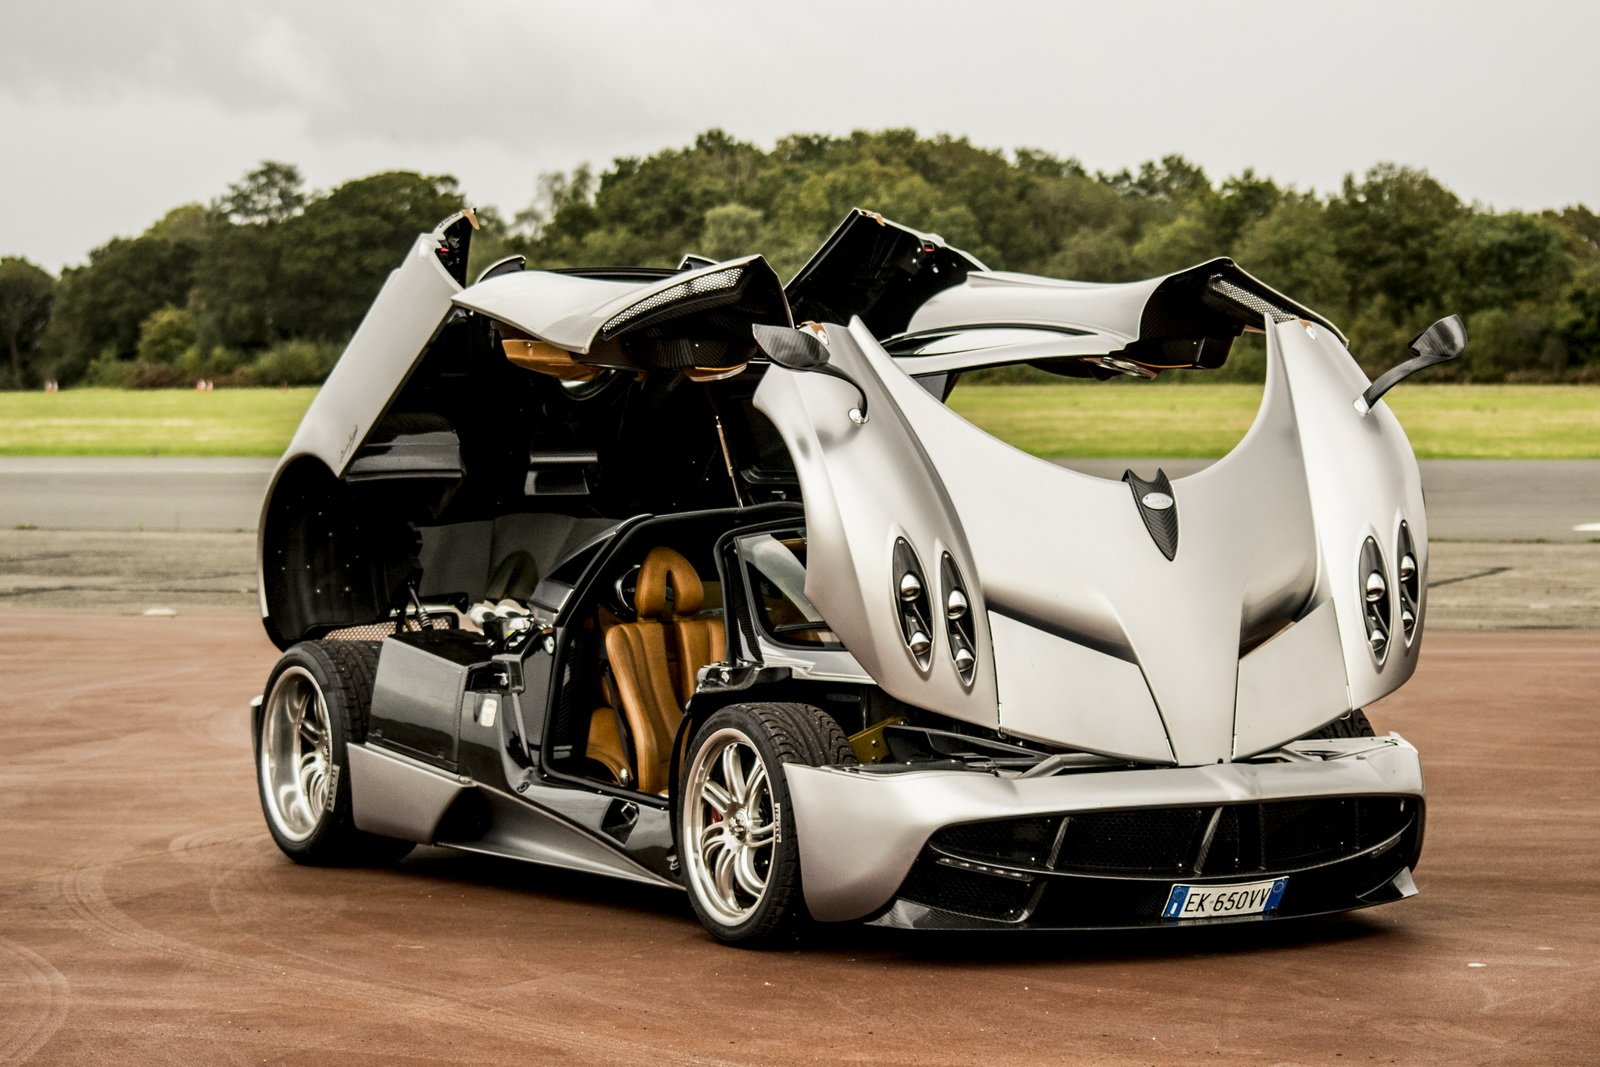 New H*Rdc*R* Pagani Huayra R Imagined Has The Build It Now On This Month